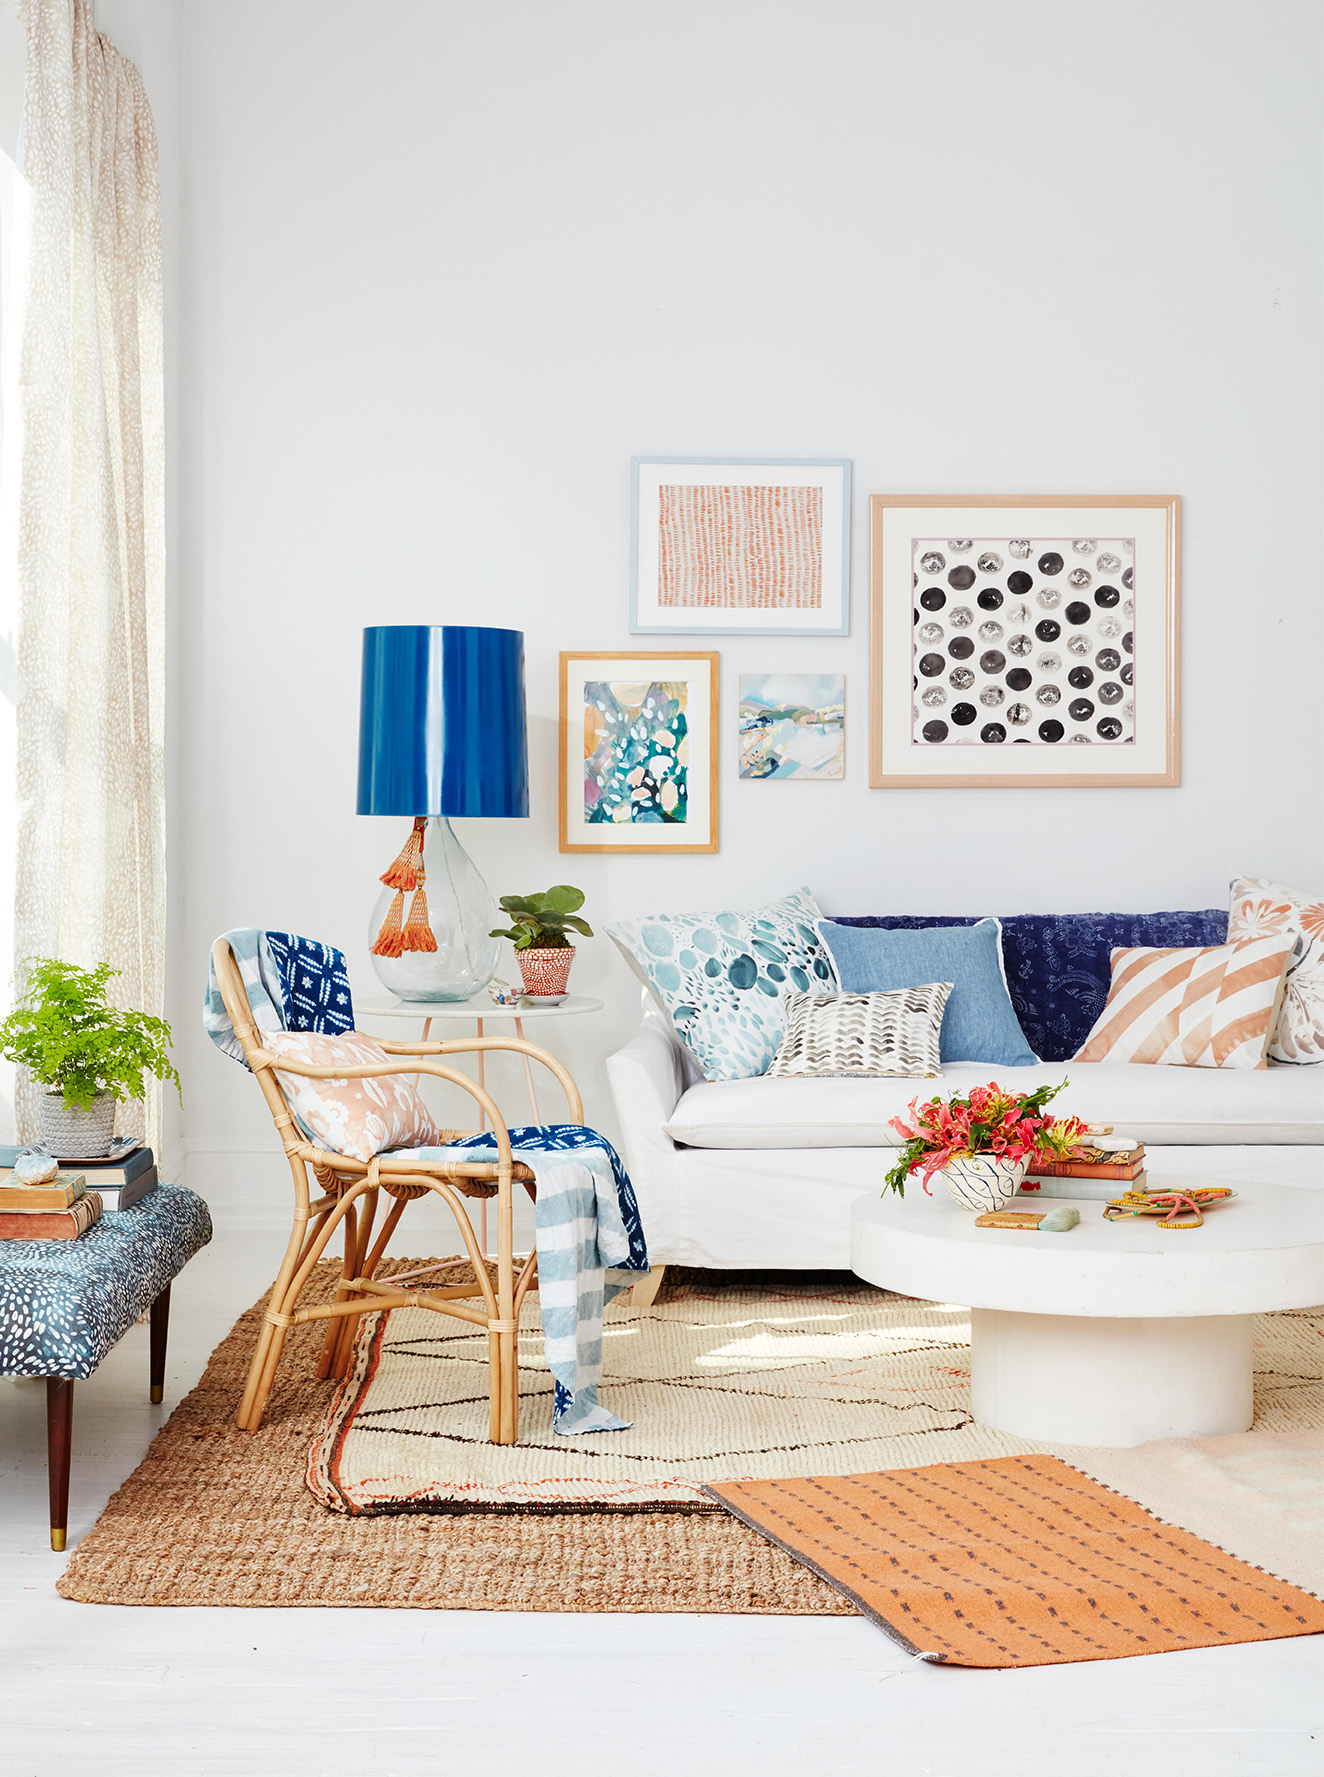 Blue and White Living Room with gallery wall and furniture